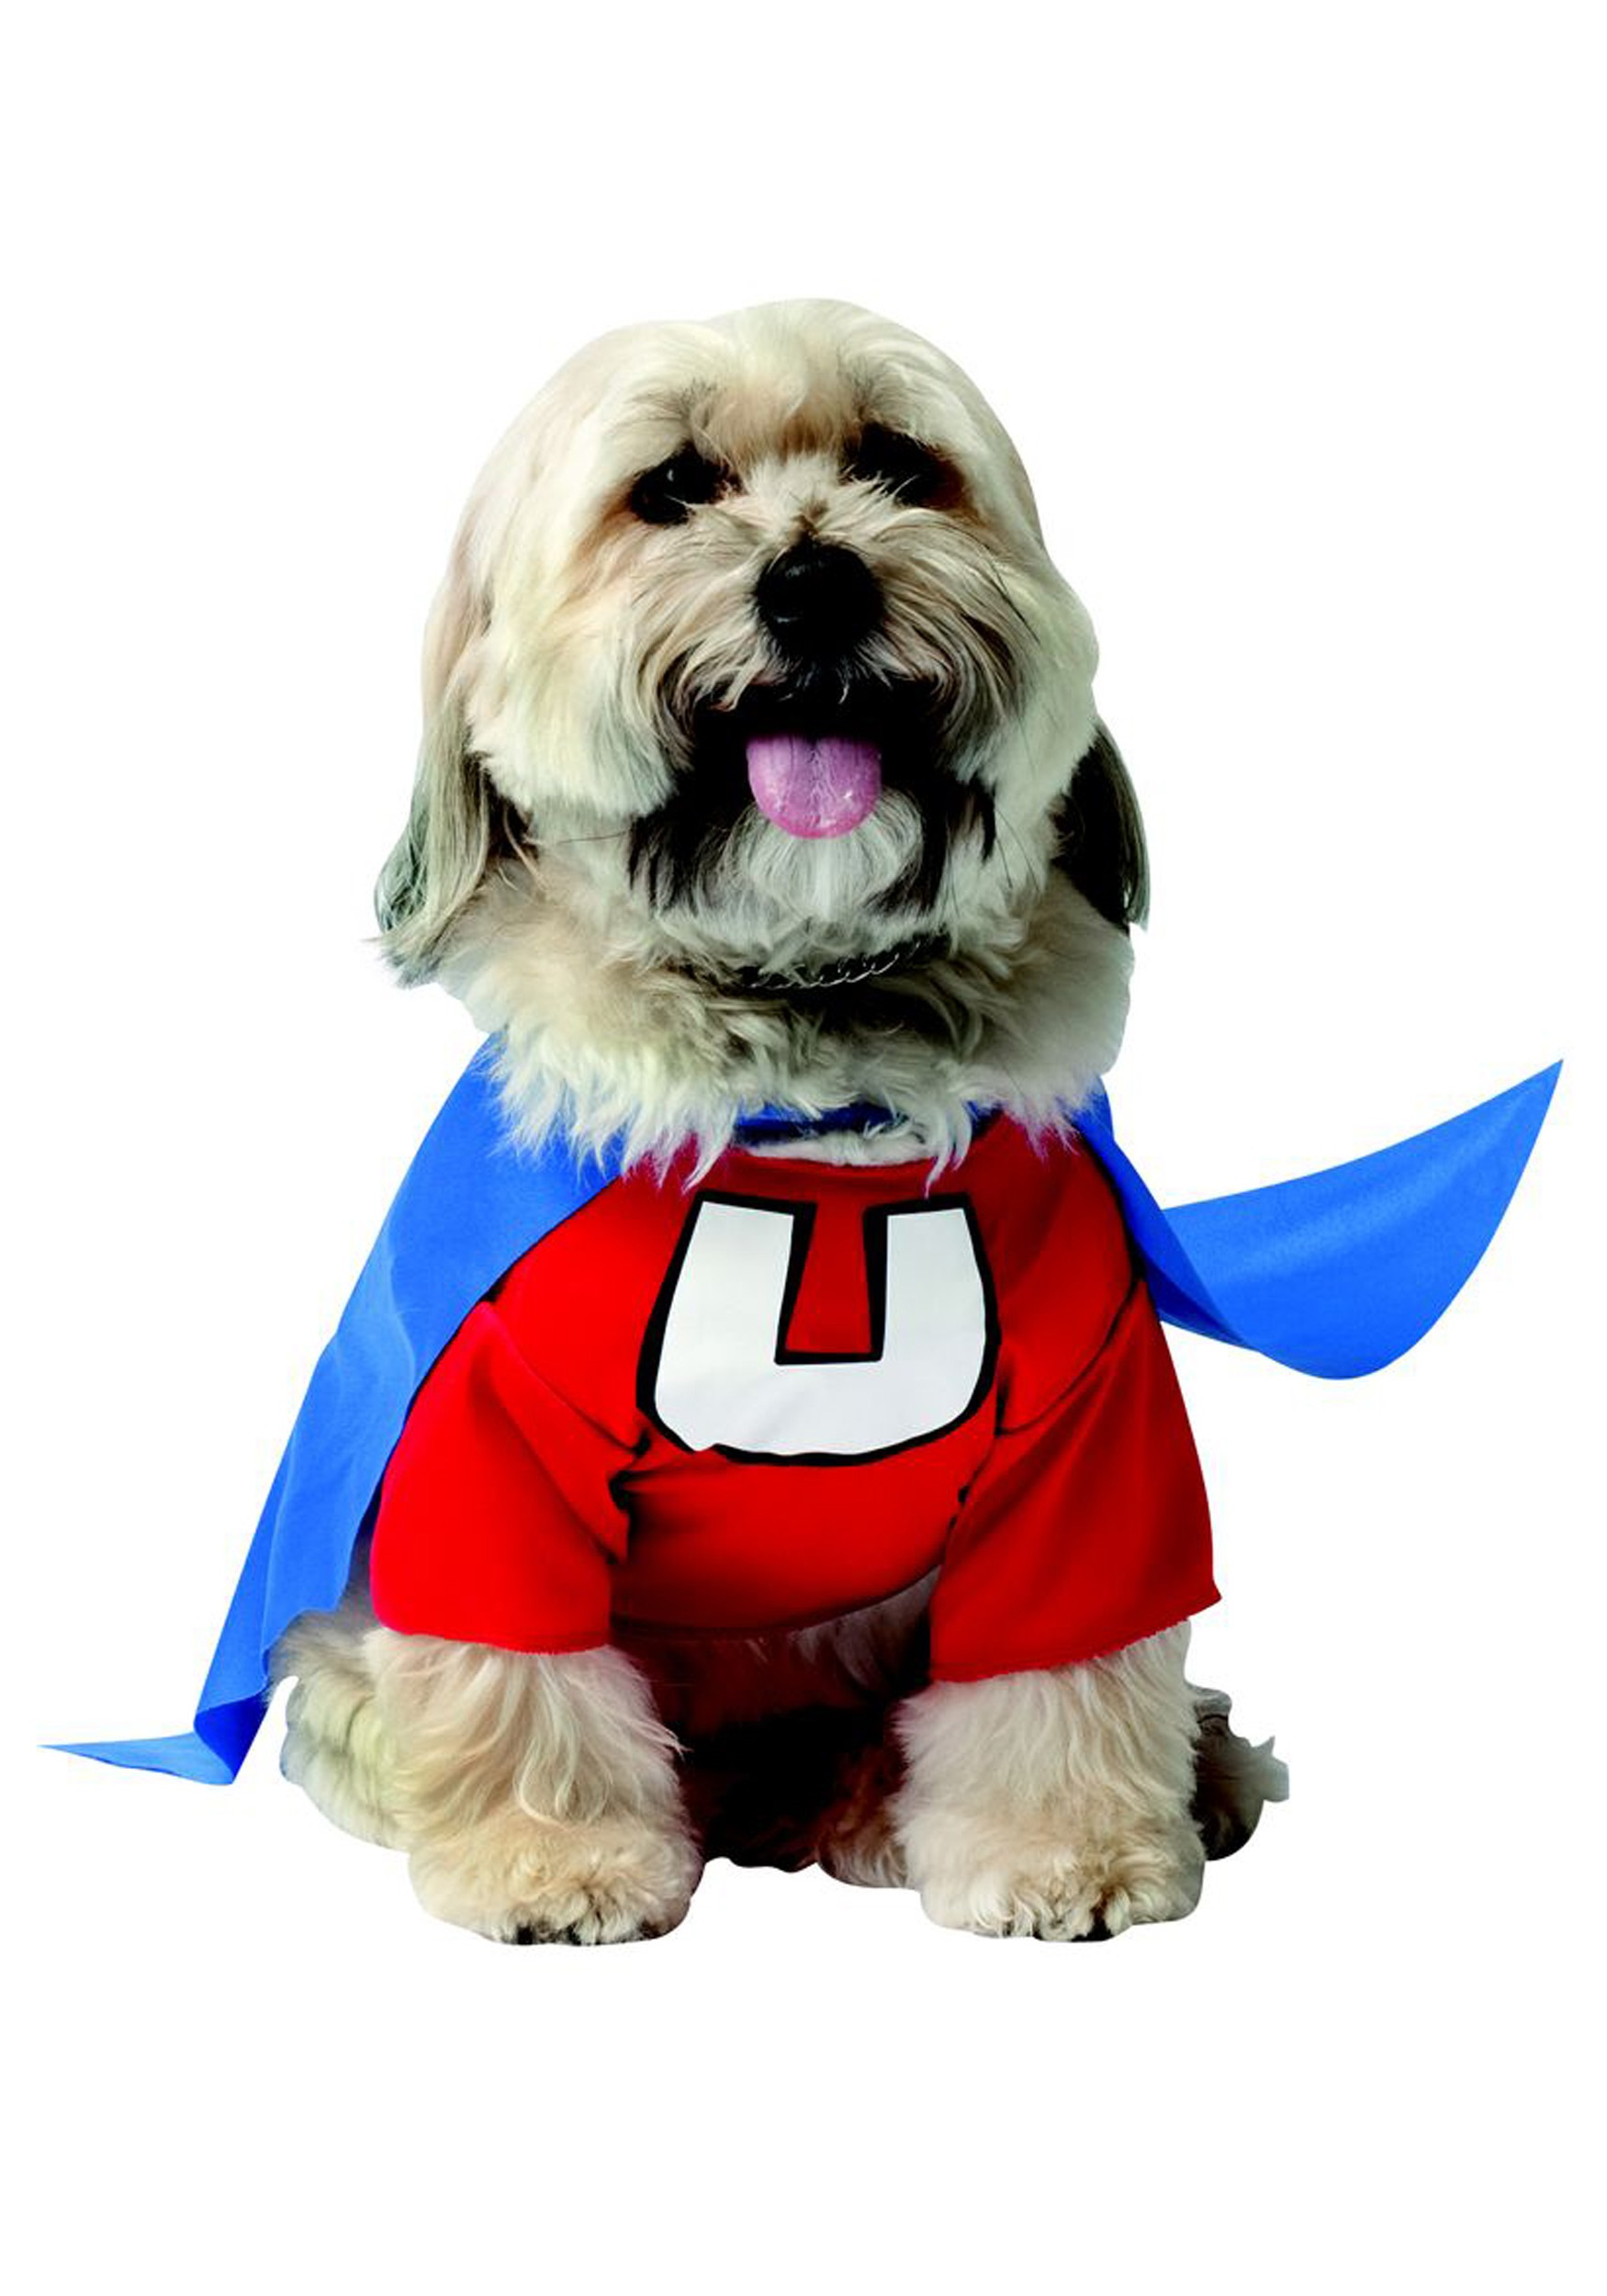 underdog dog costume - Dogs With Halloween Costumes On